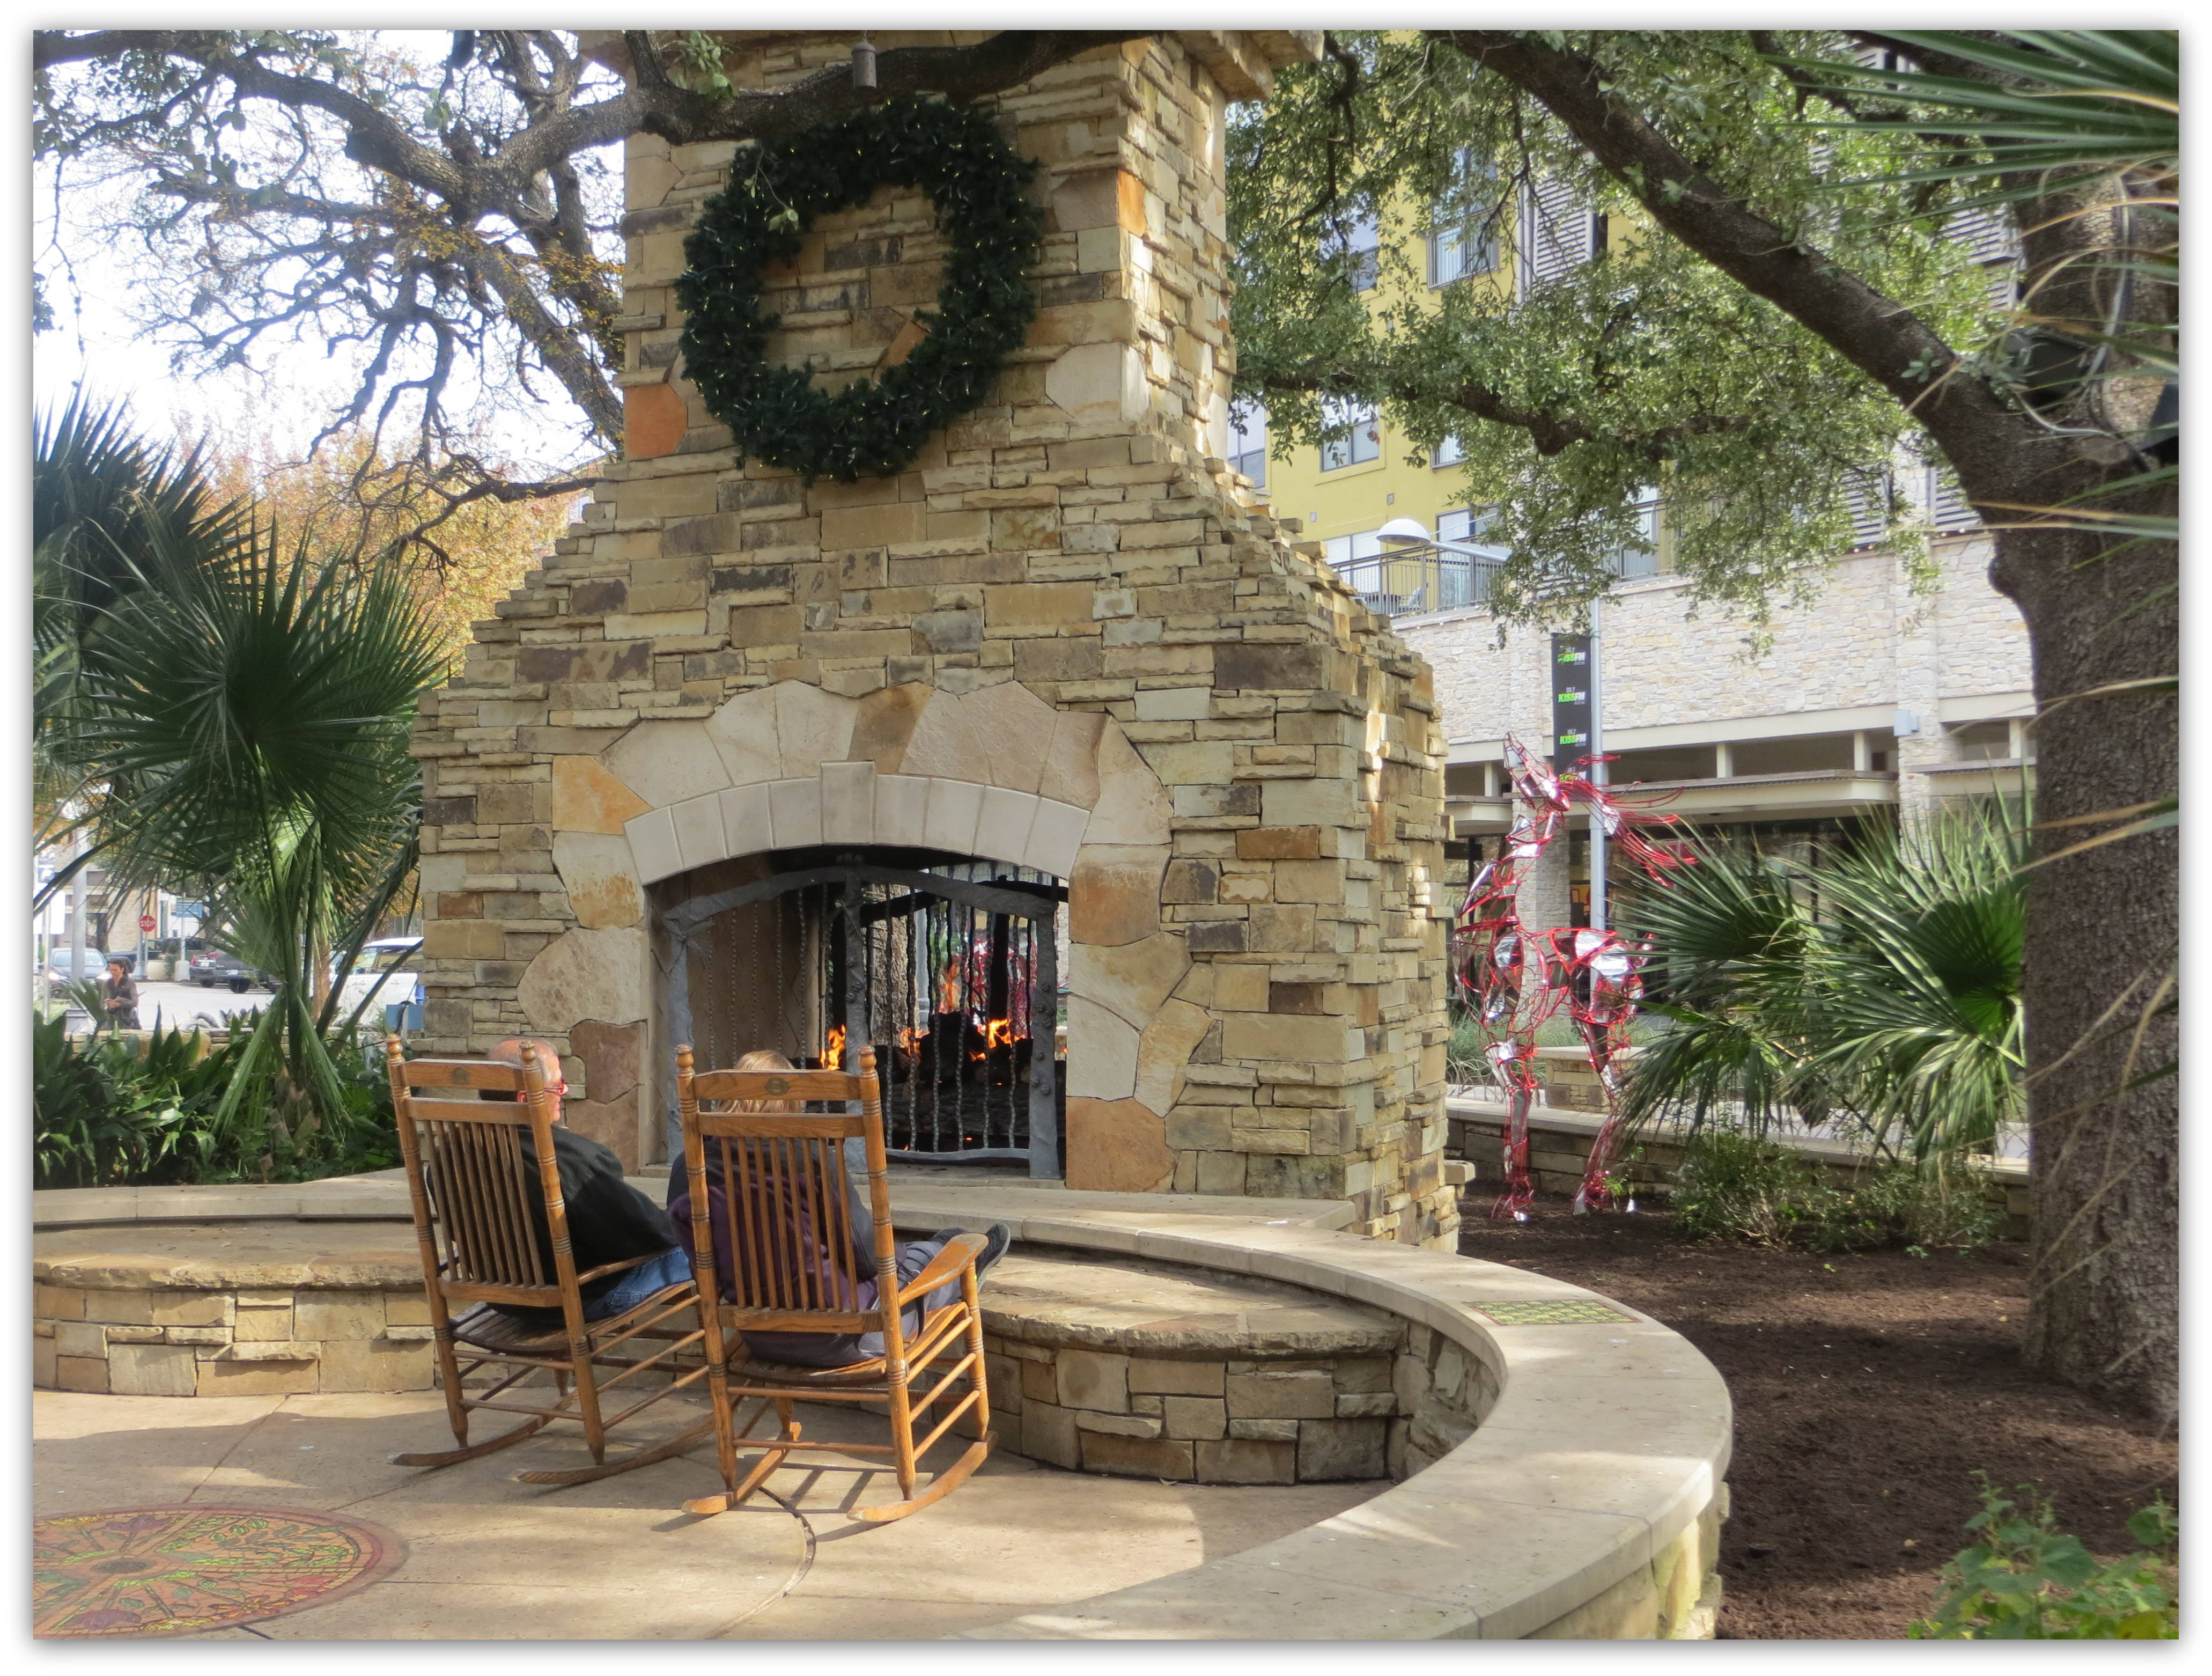 at the Domain in NW Austin  should be up and running by the end of  September 2016  75  of the new tenants are Austin owned and operated   a  real plus. The Domain in NW Austin soon to be offering nightlife